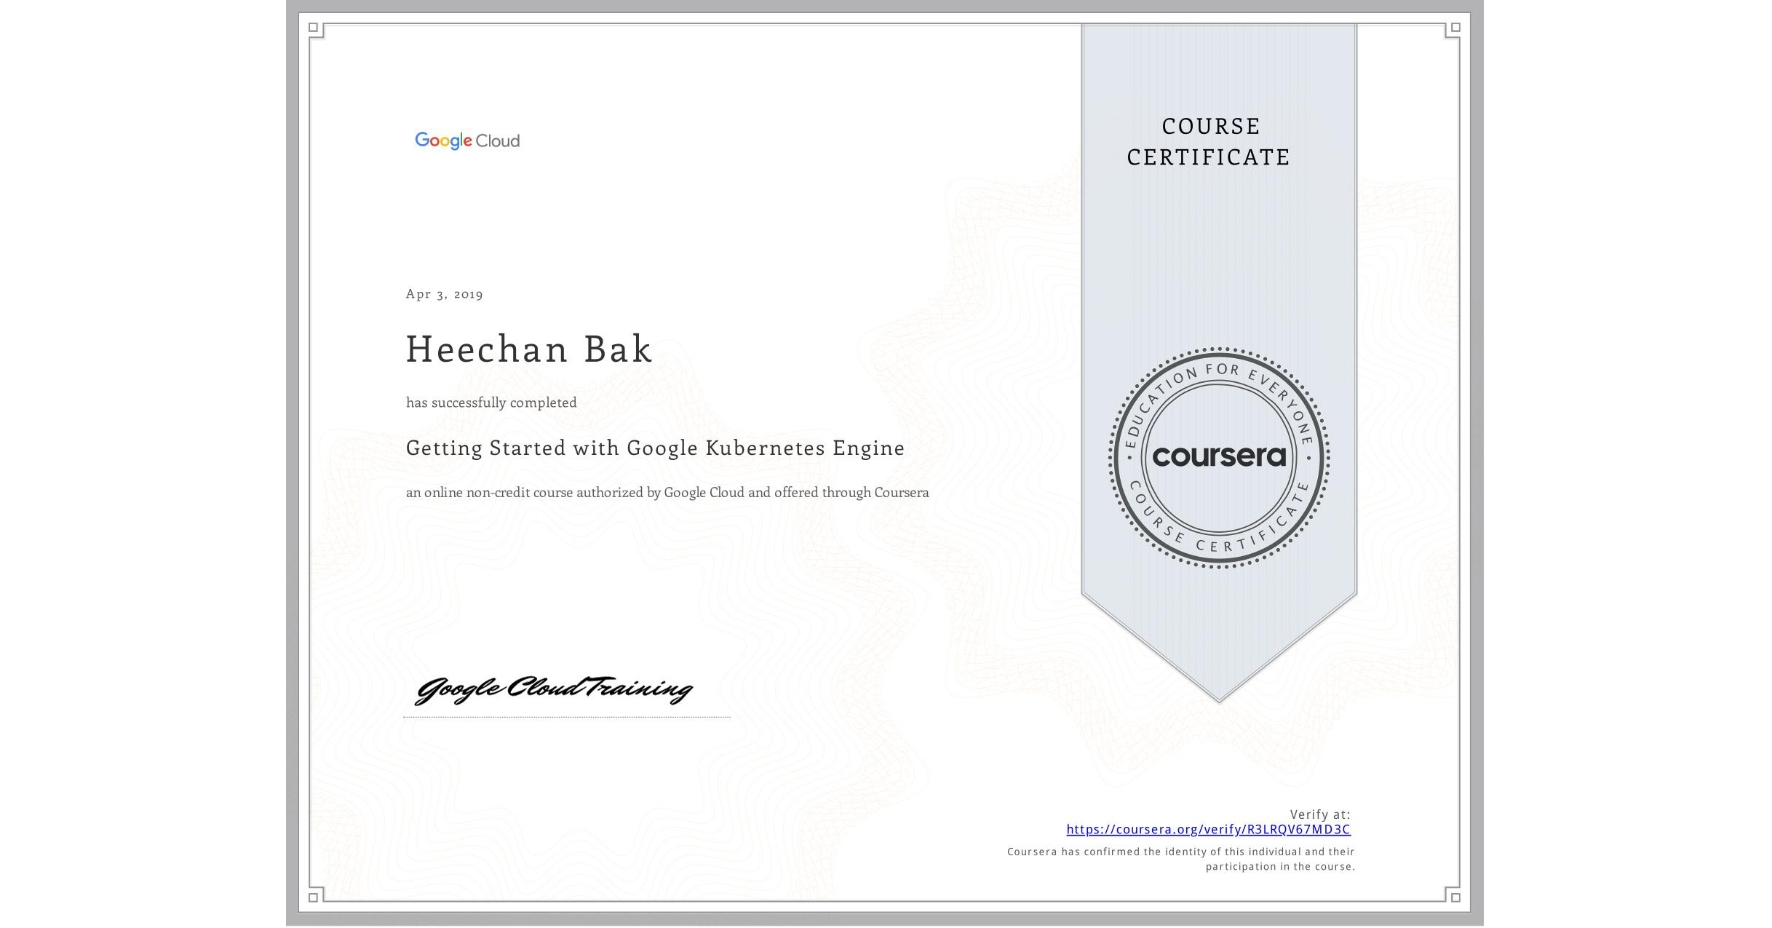 View certificate for Heechan Bak, Getting Started with Google Kubernetes Engine, an online non-credit course authorized by Google Cloud and offered through Coursera